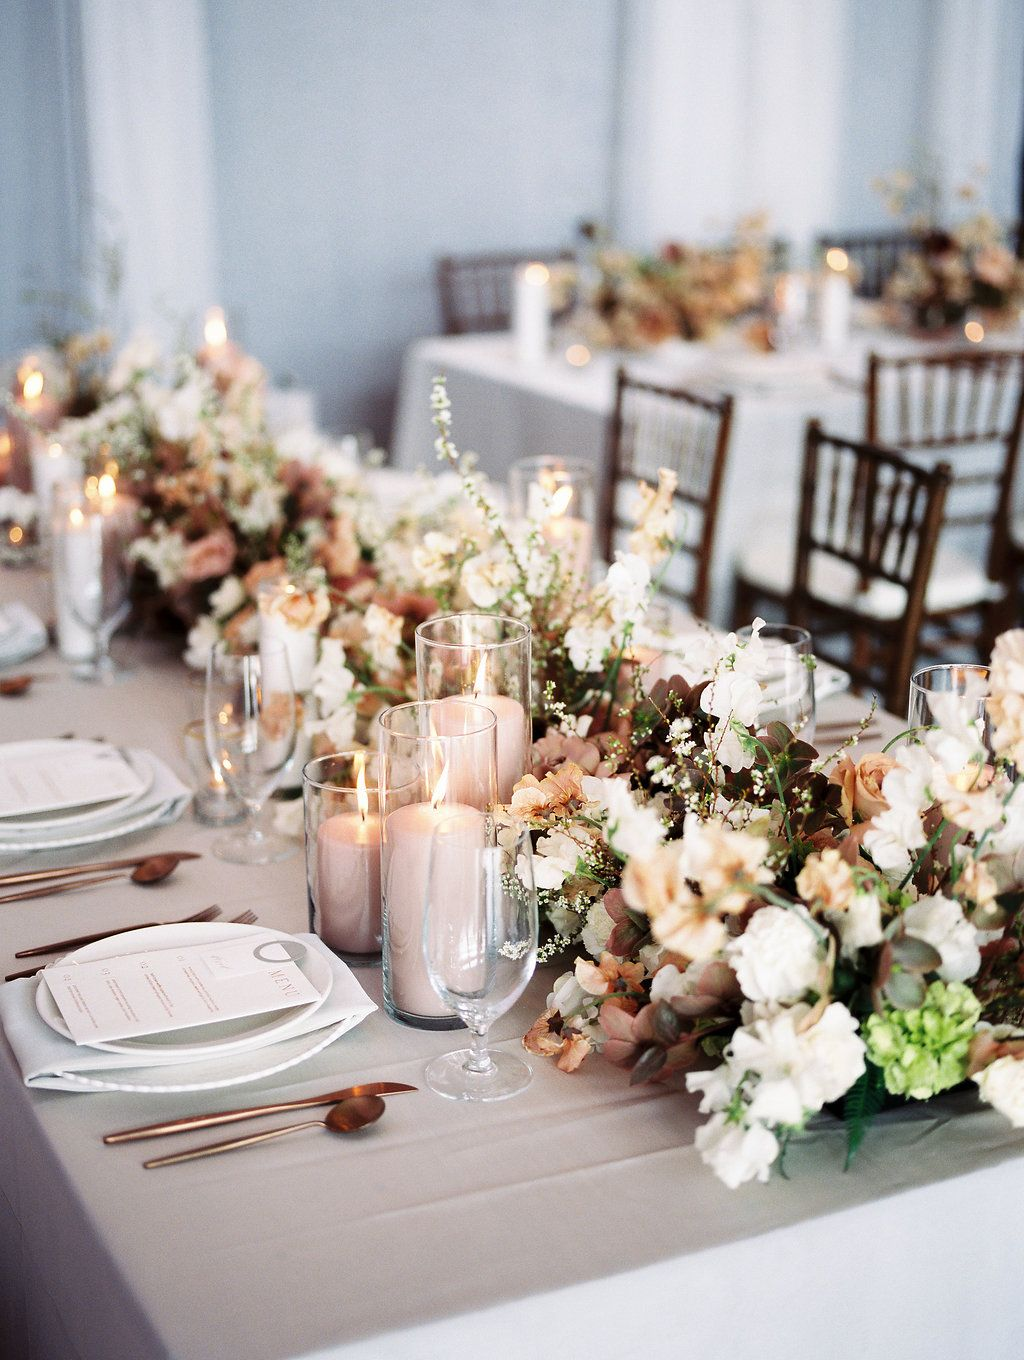 An Indoor Modern Spring Wedding In A Delicate Soft Colour Palette Omaha Real Weddings Wedding Venues Indoor Modern Wedding Decor Wedding Table Pink